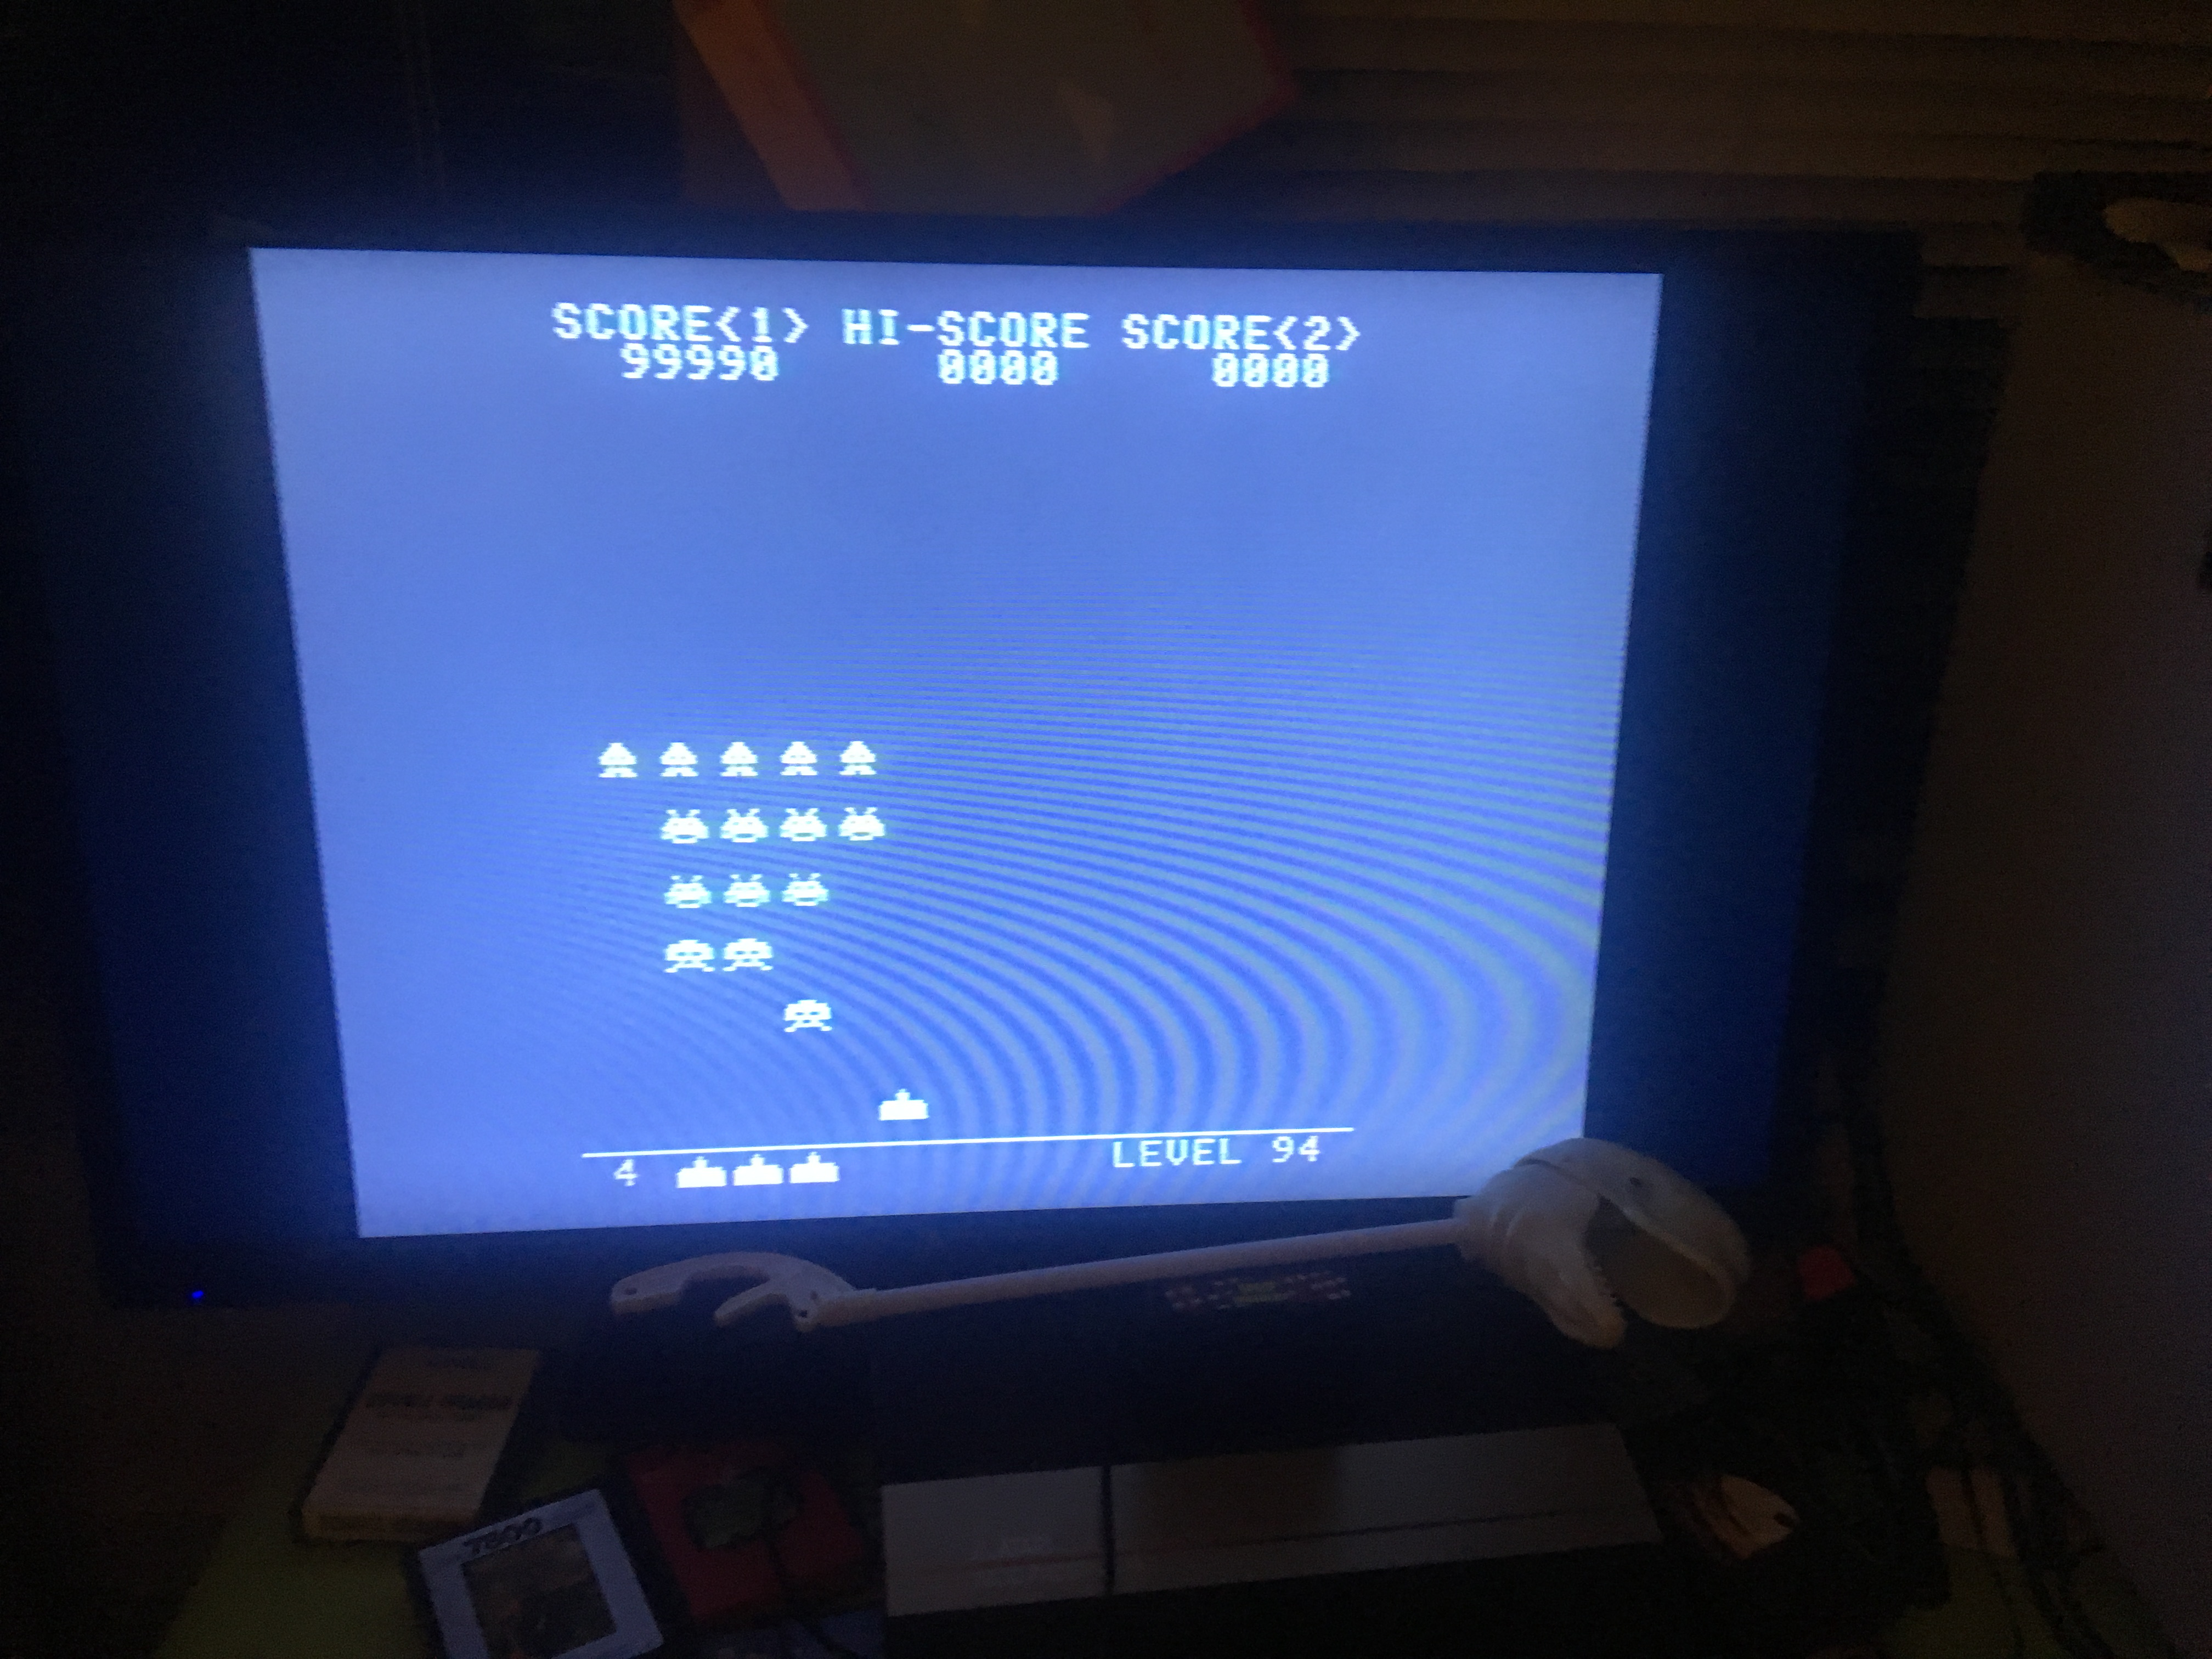 CousinVinnie: Space Invaders [None/No Shields] (Atari 7800) 100,310 points on 2017-10-14 22:30:25